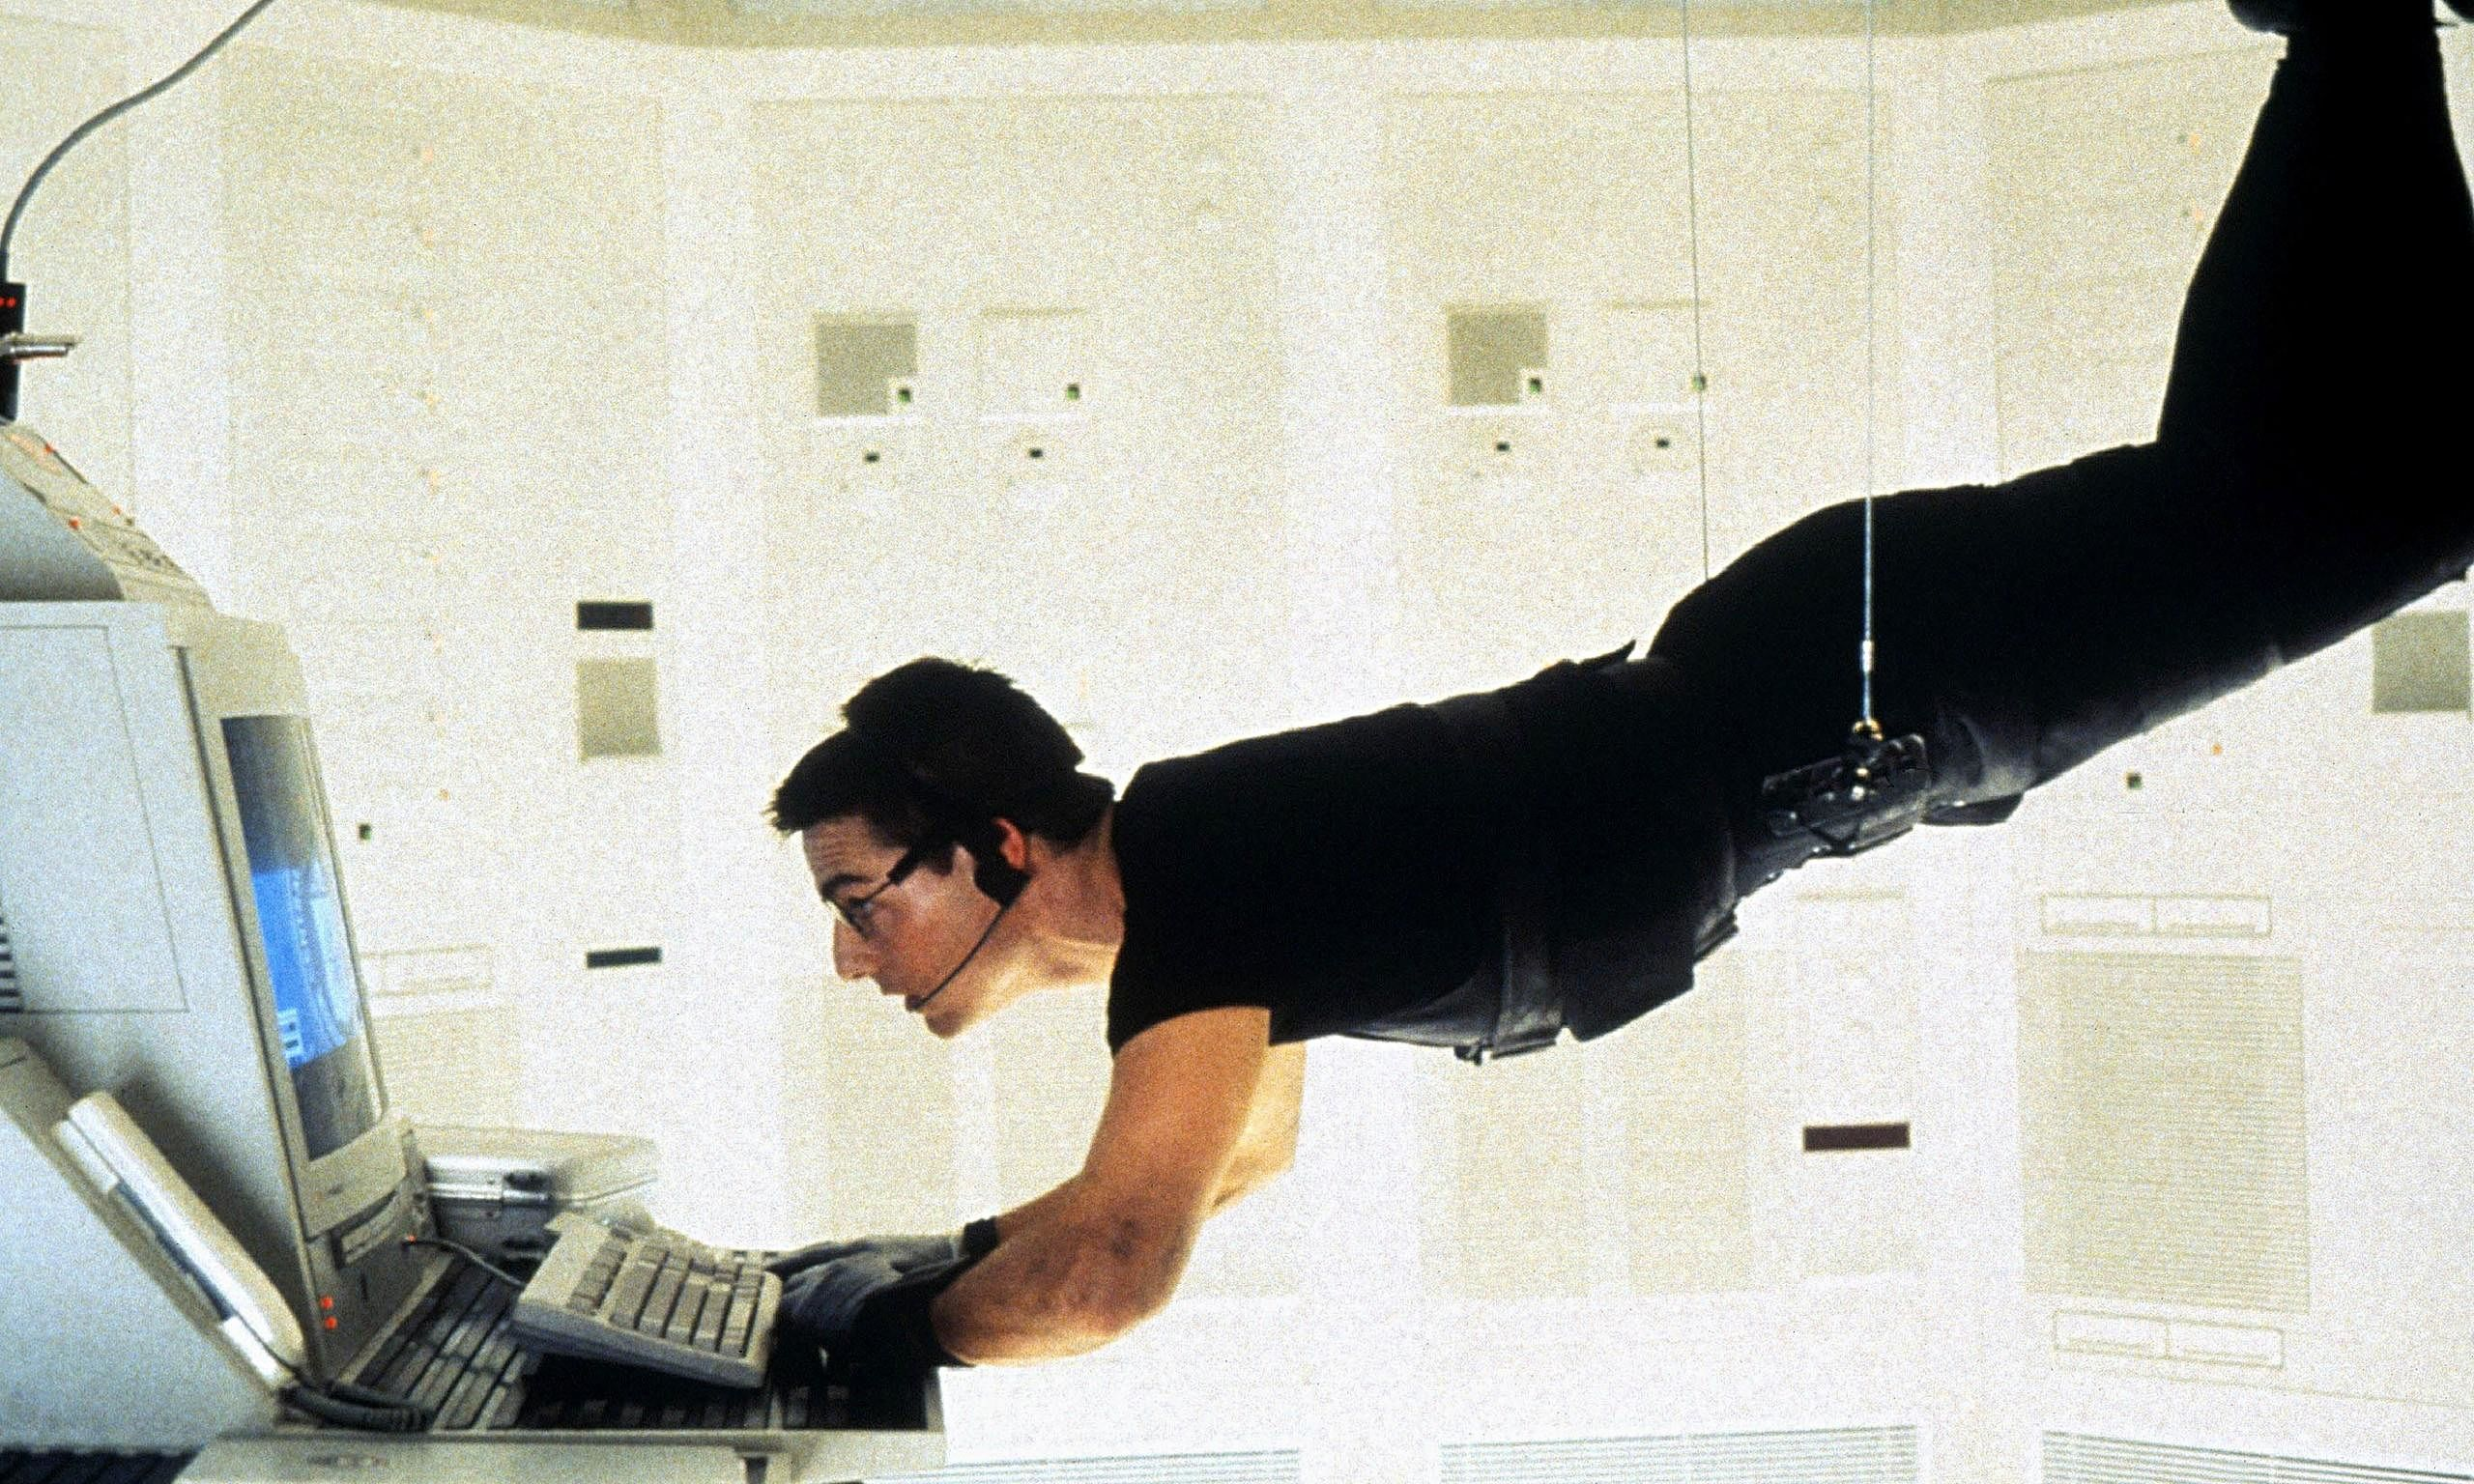 mission impossible 10 Years, 10 Questions With David Koepp: On Jurassic Park, Indiana Jones, Spider Man, and Stephen King